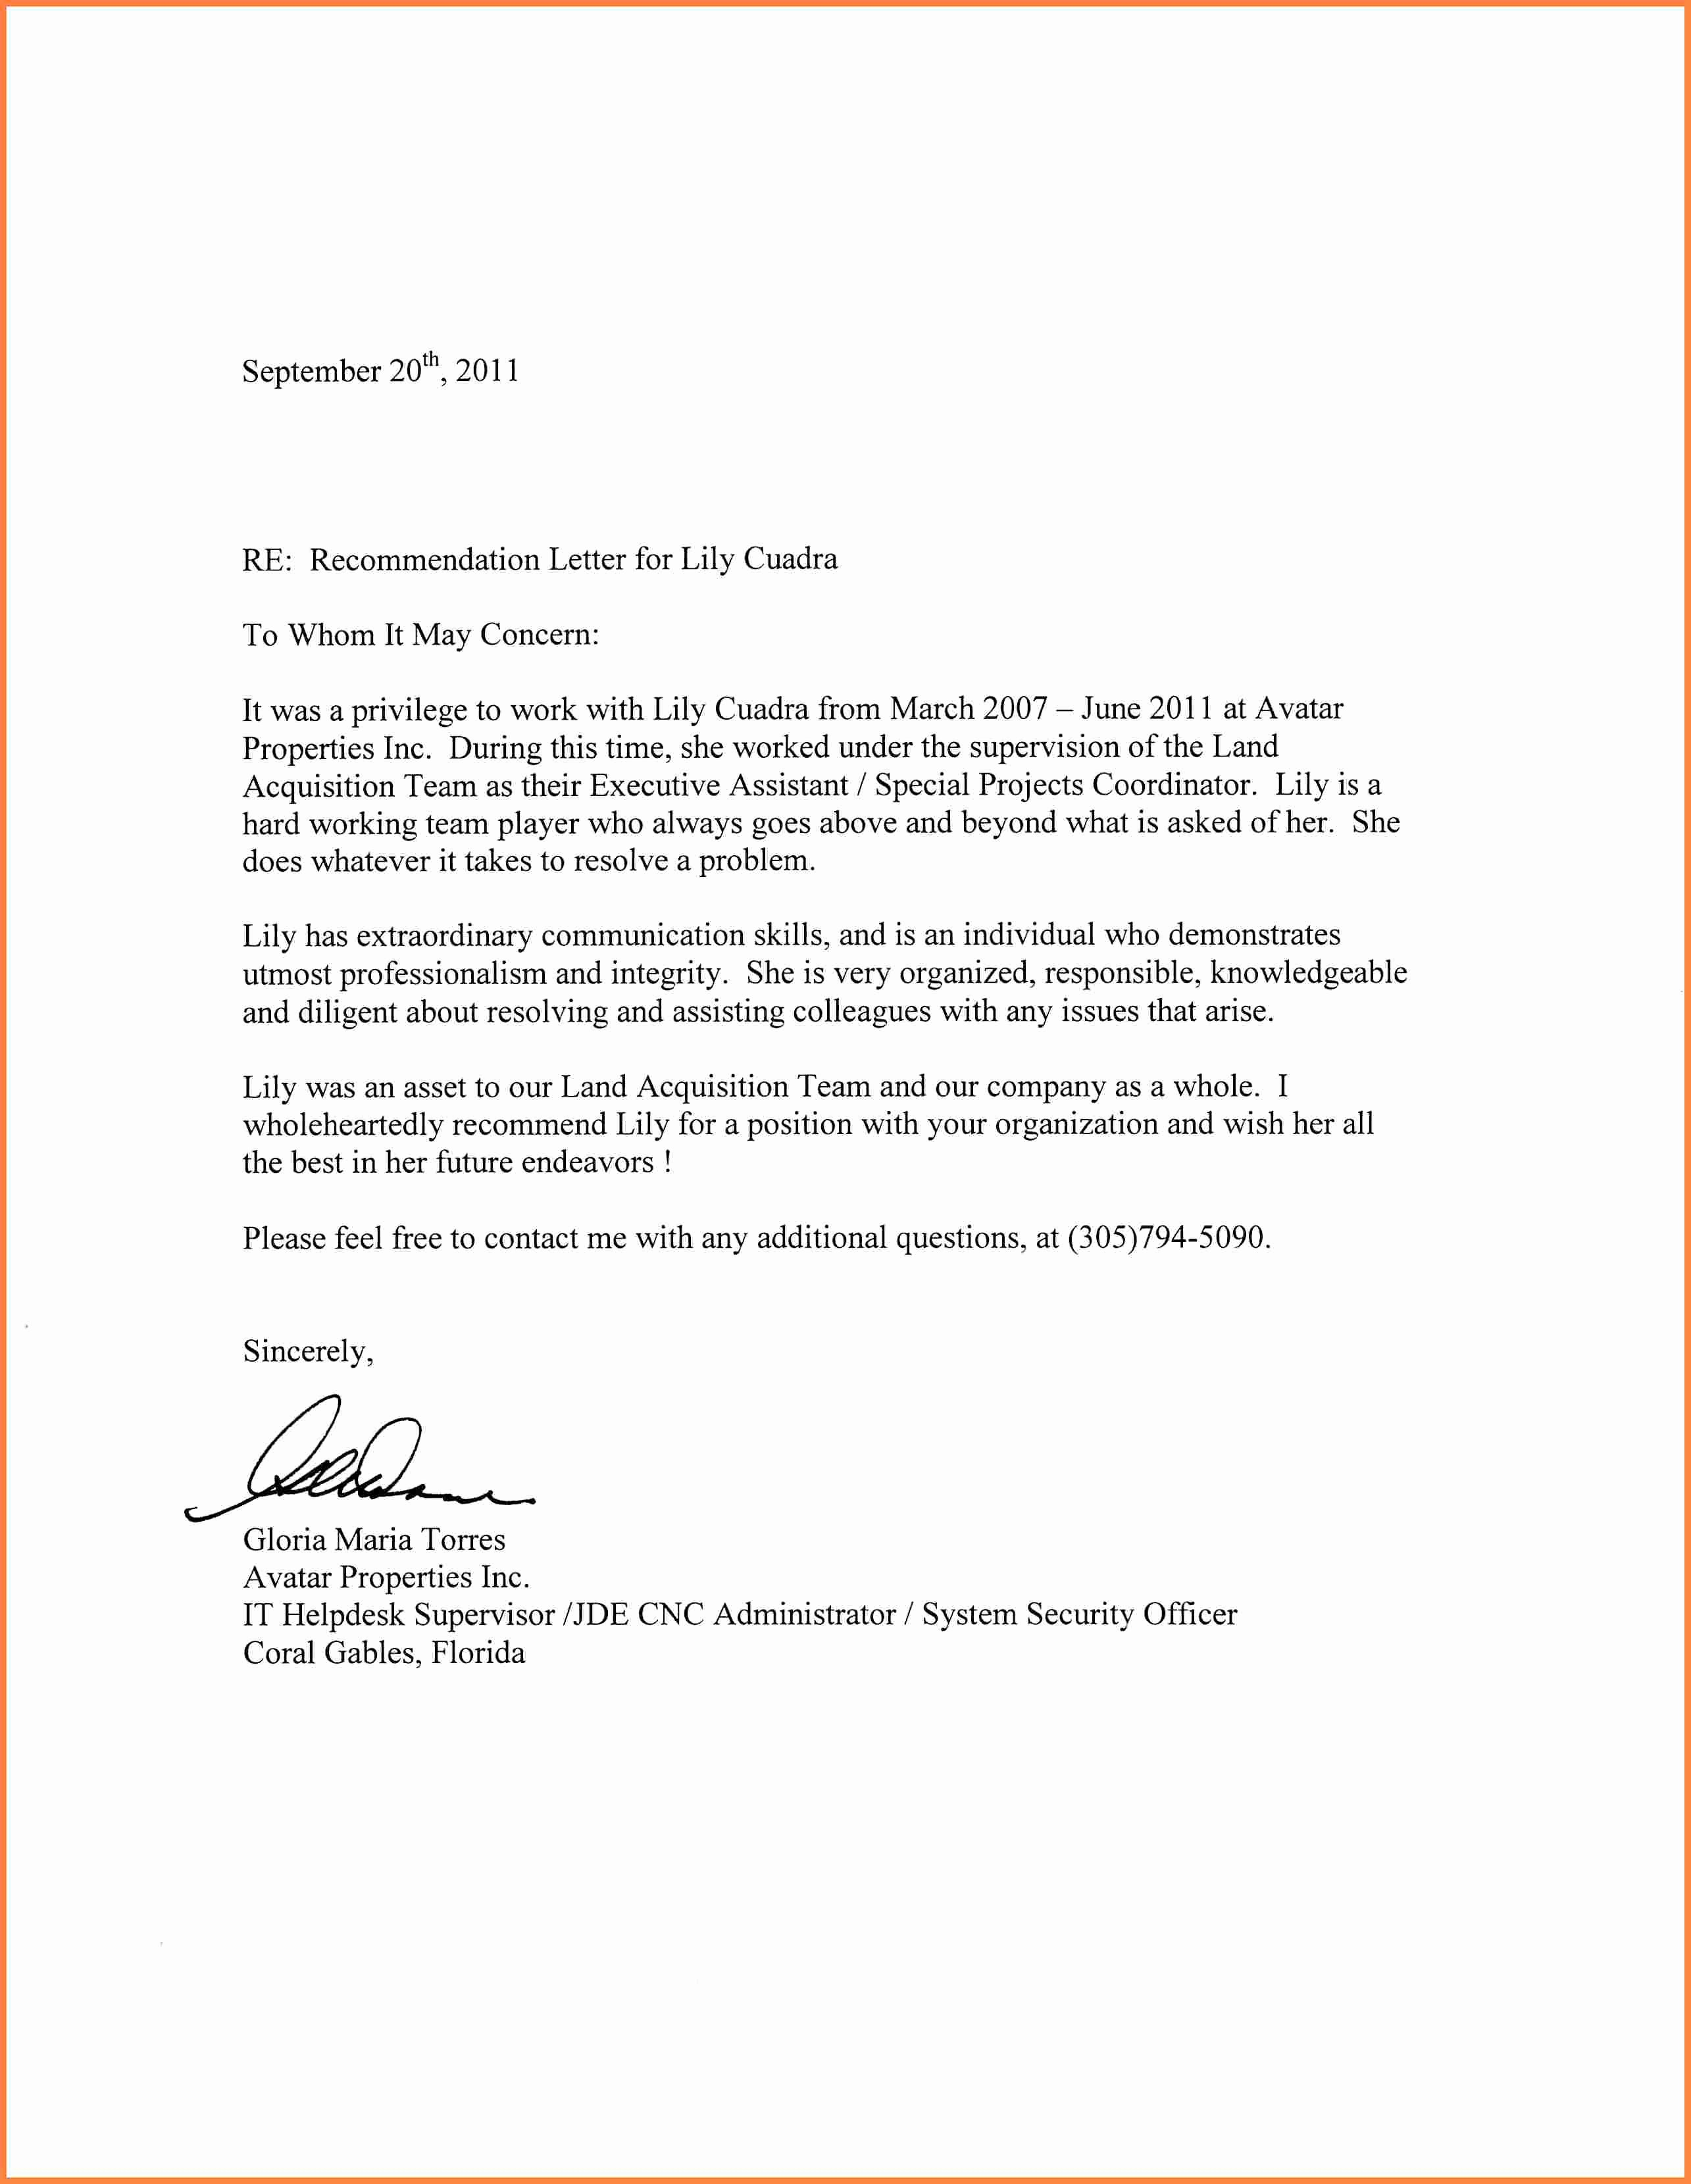 Recommendation Letter Sample From Employer Inspirational Re Mendation Letter for An Employee Graduate School